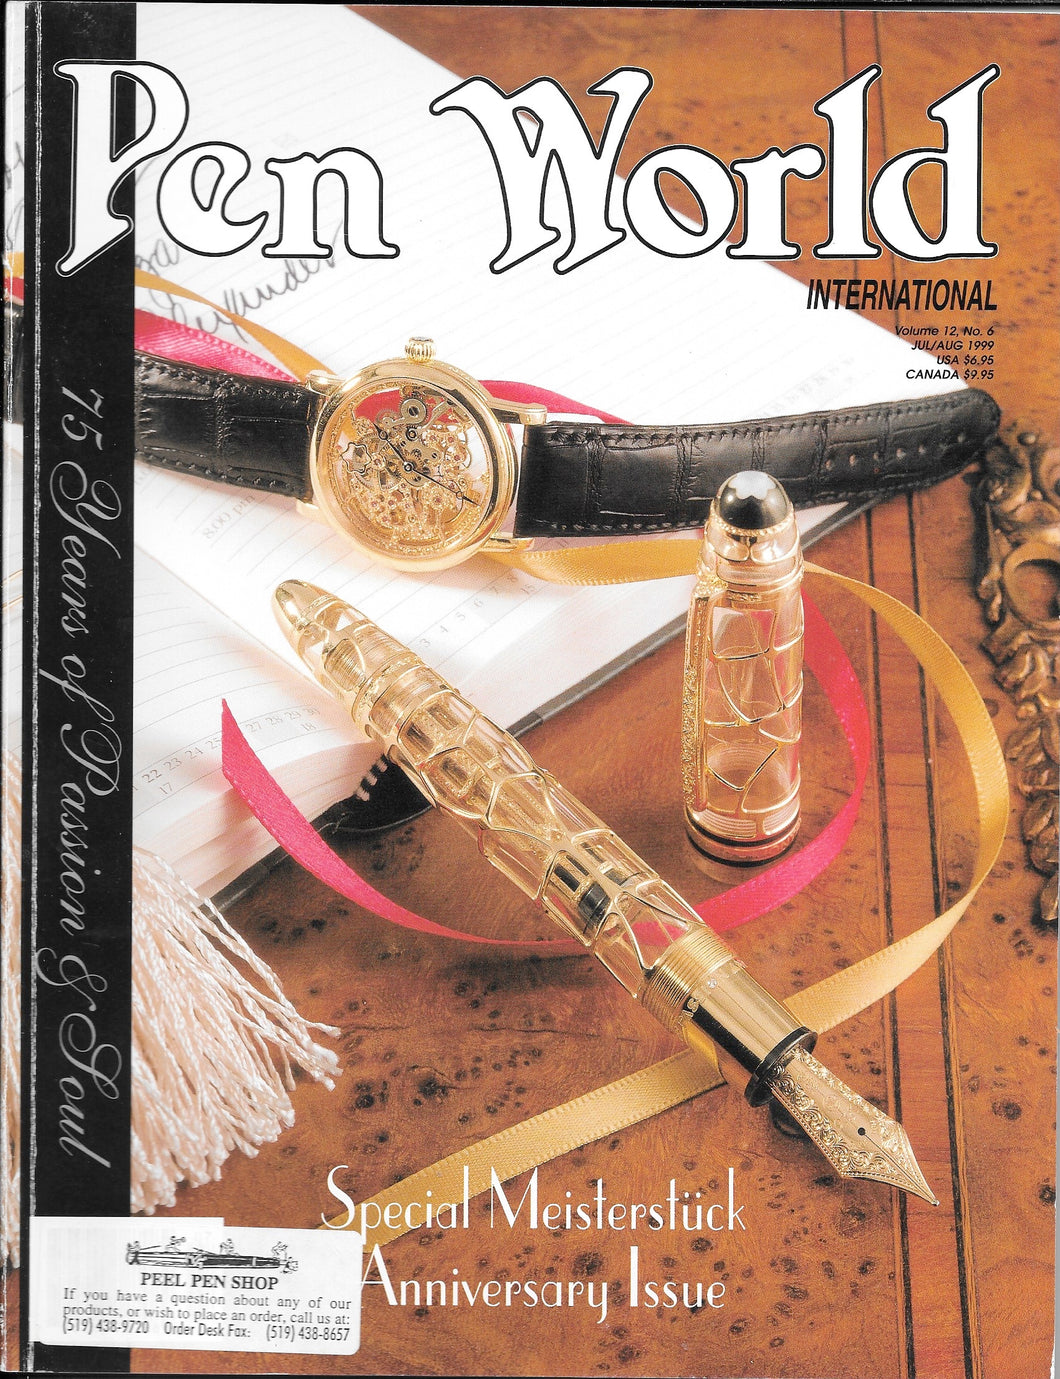 Pen World, Back Issues. July/Aug. 1999 Vol.12. No.6